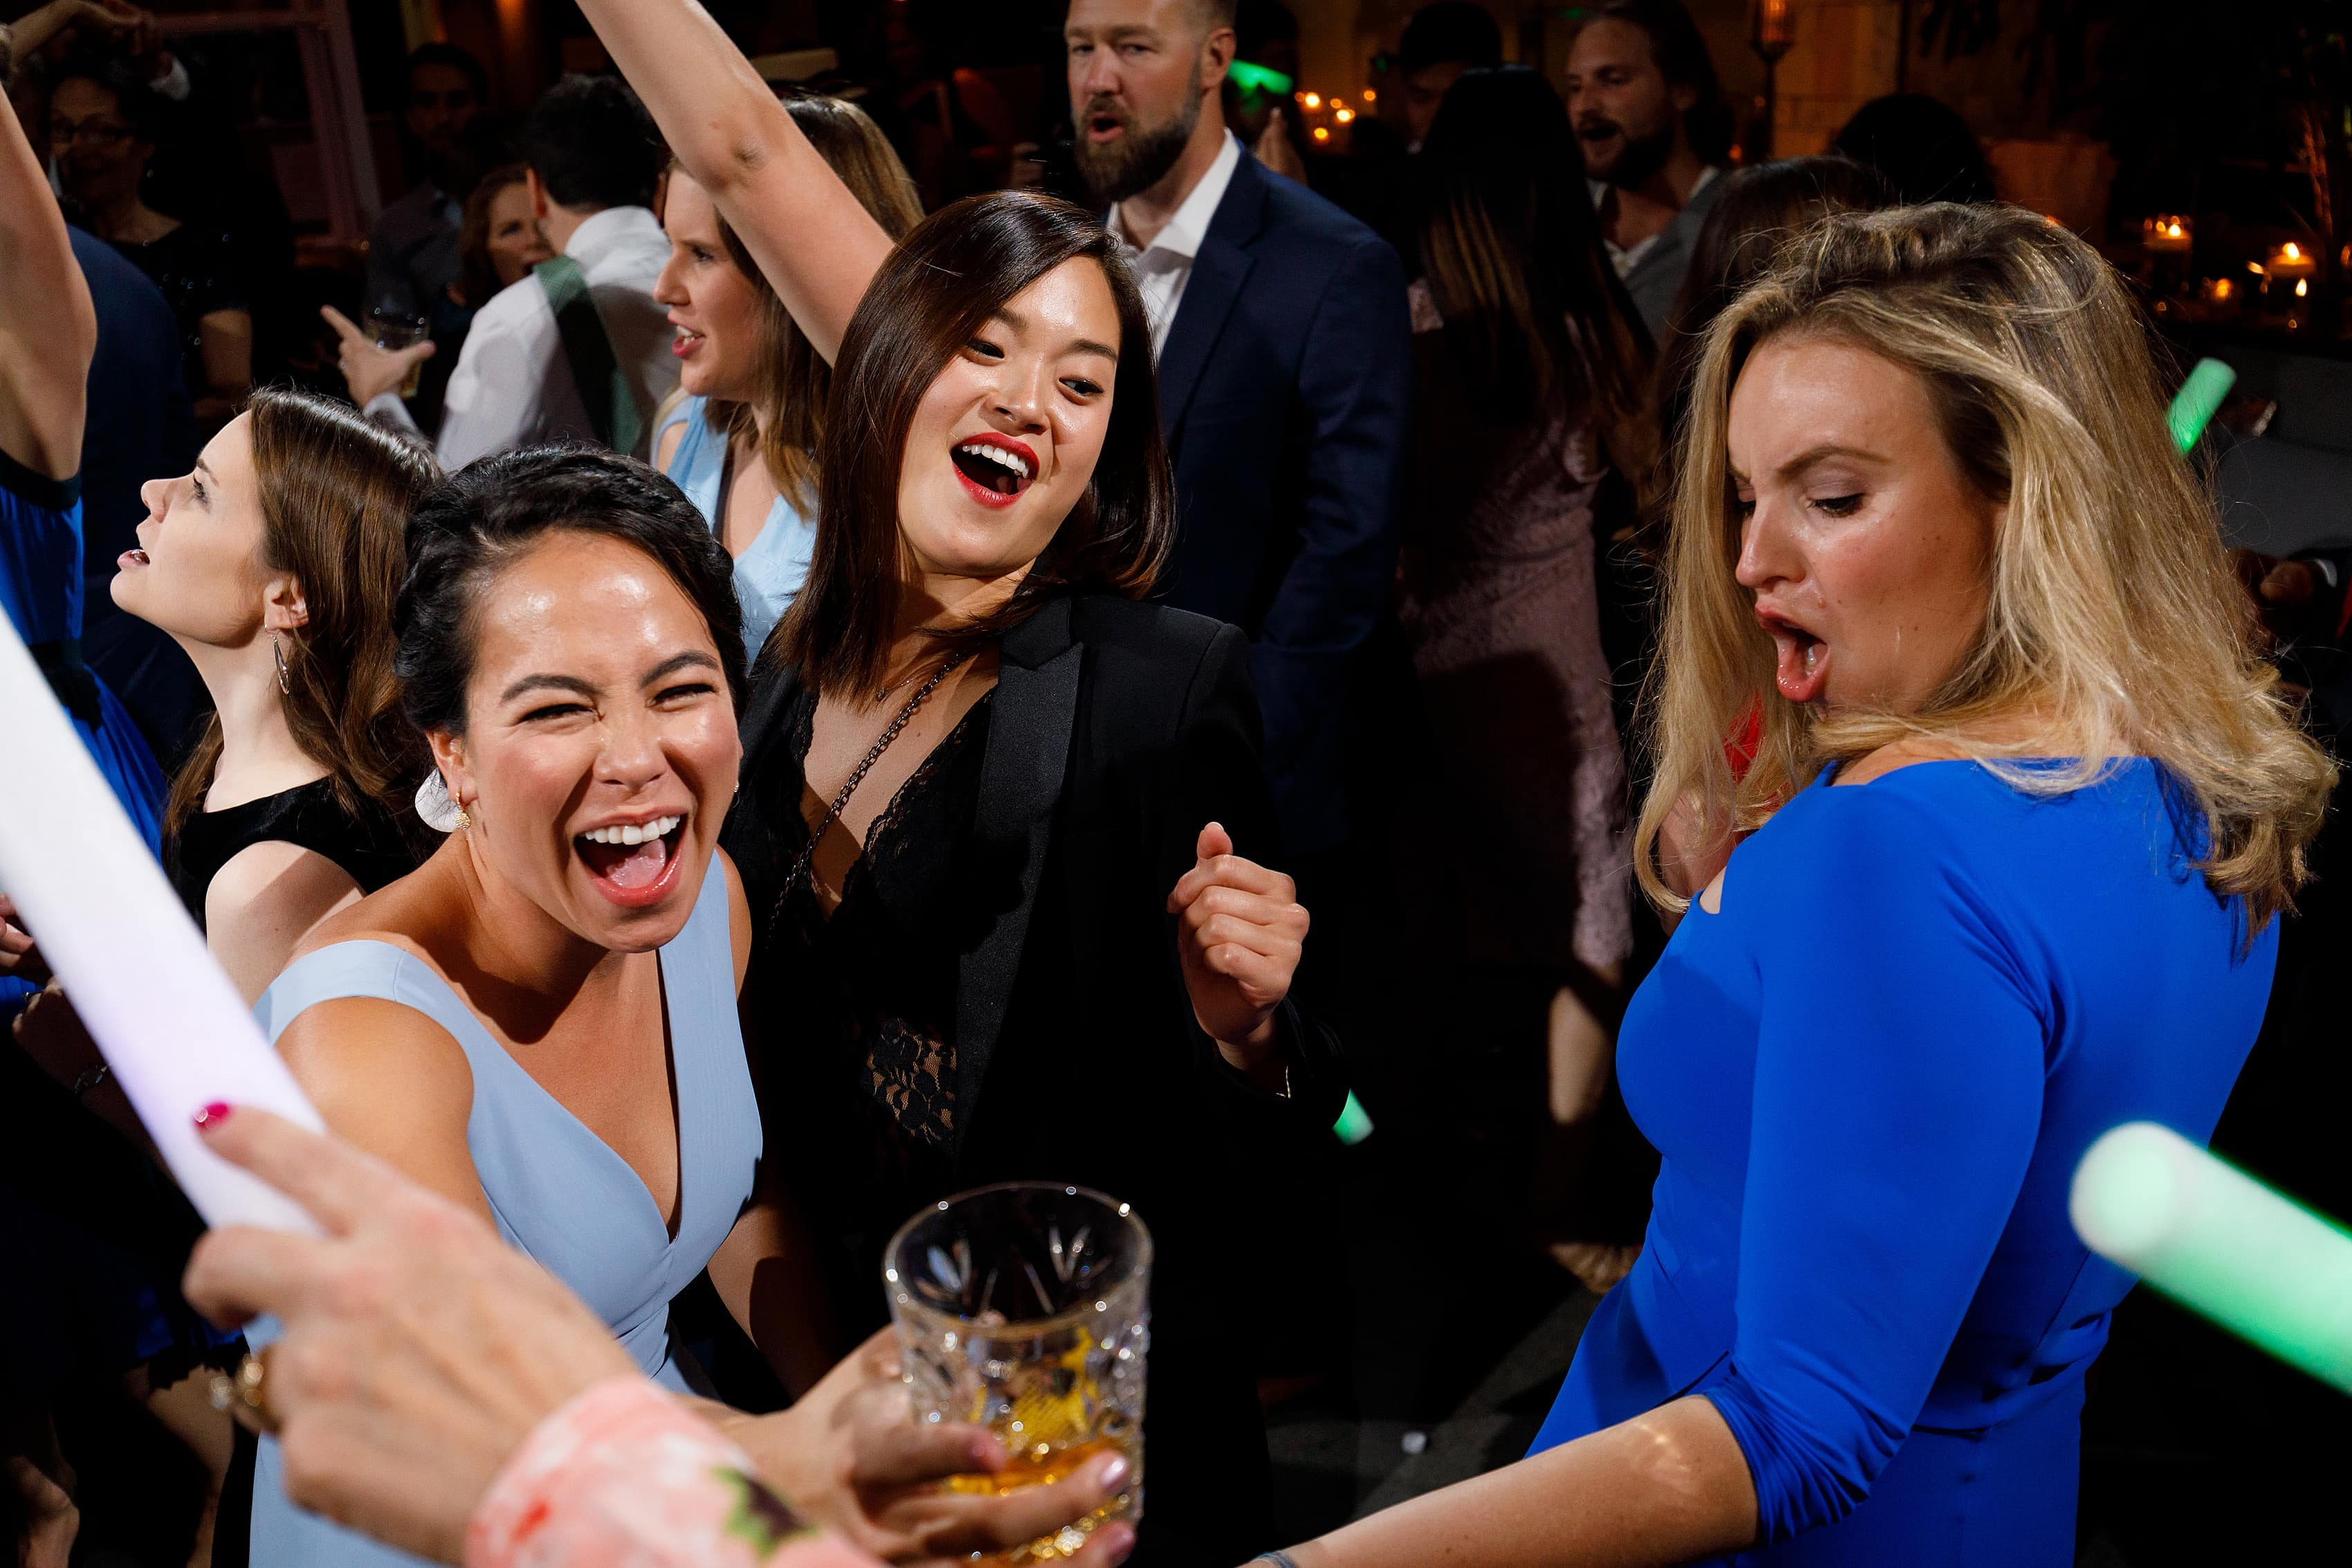 wedding guests dance during wedding reception at Boleo rooftop bar at Kimpton Gray Hotel in downtown Chicago